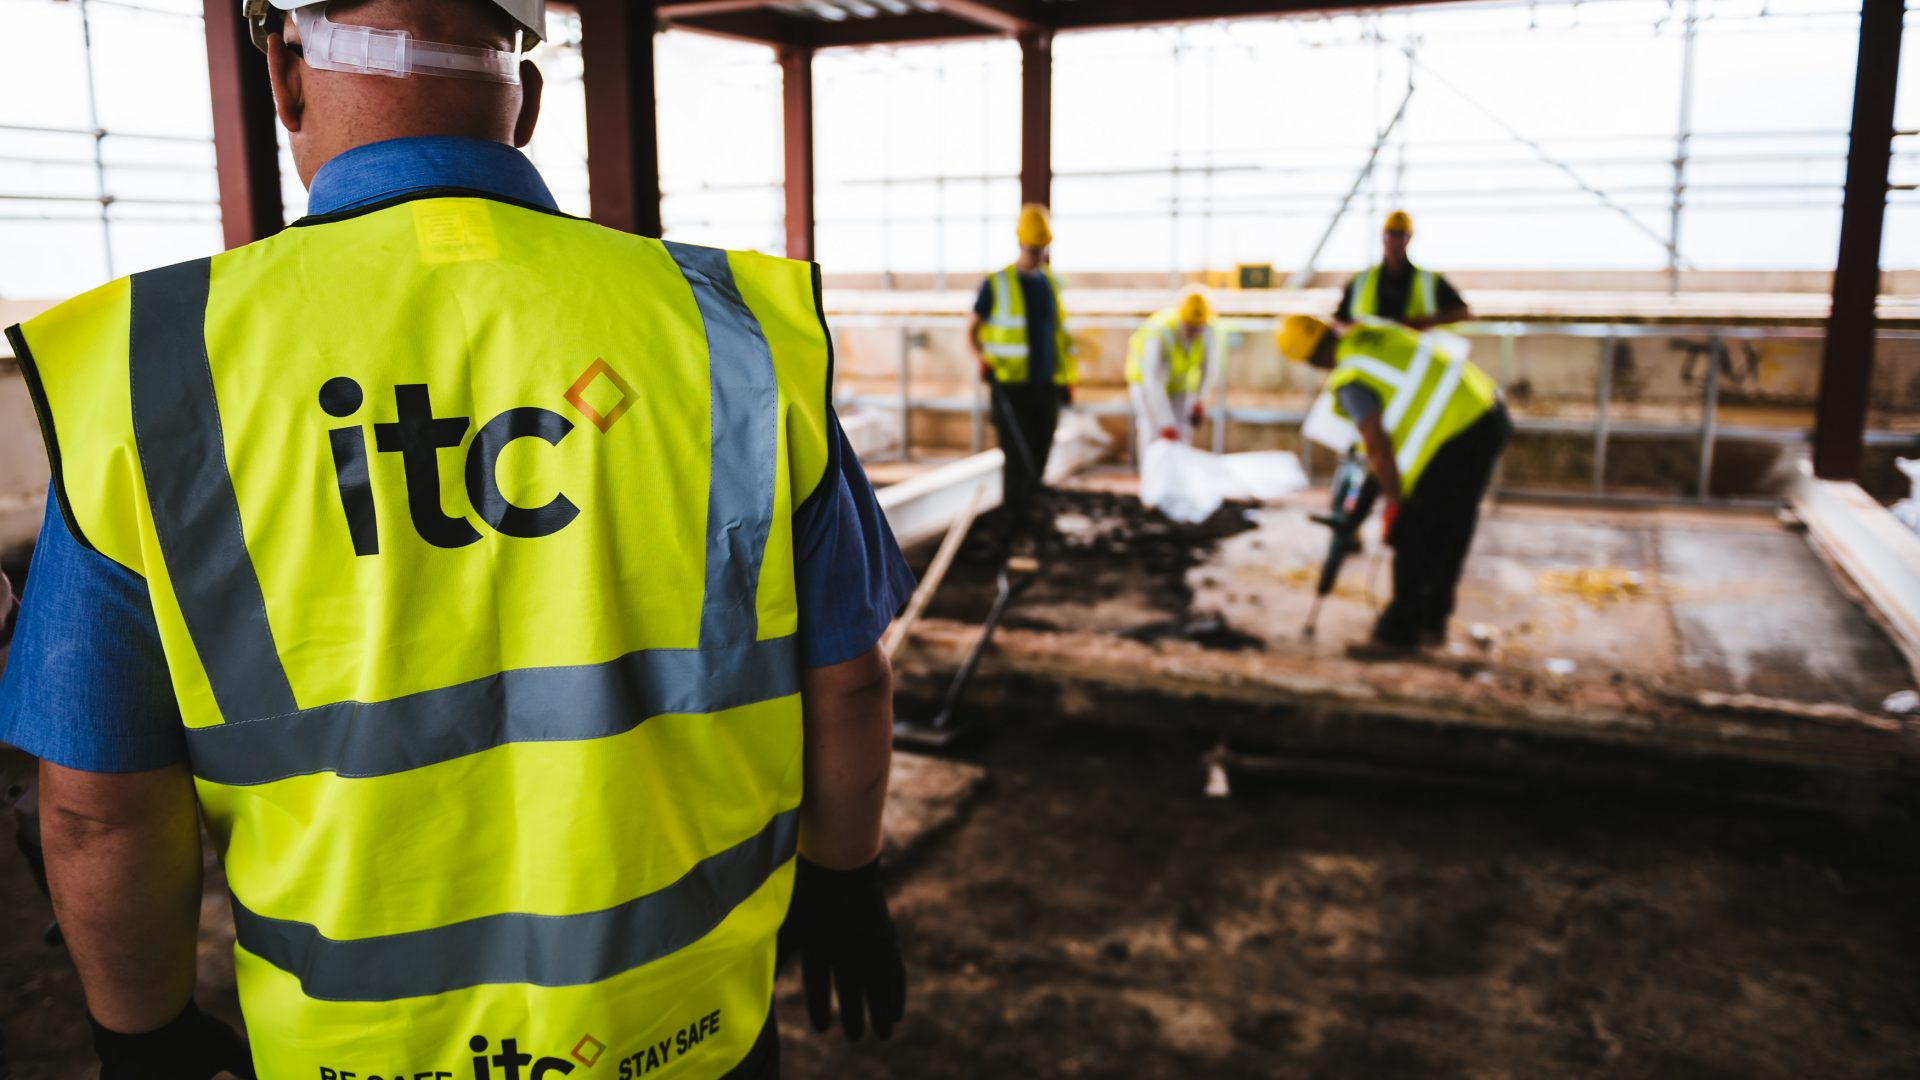 ITC construction workers onsite